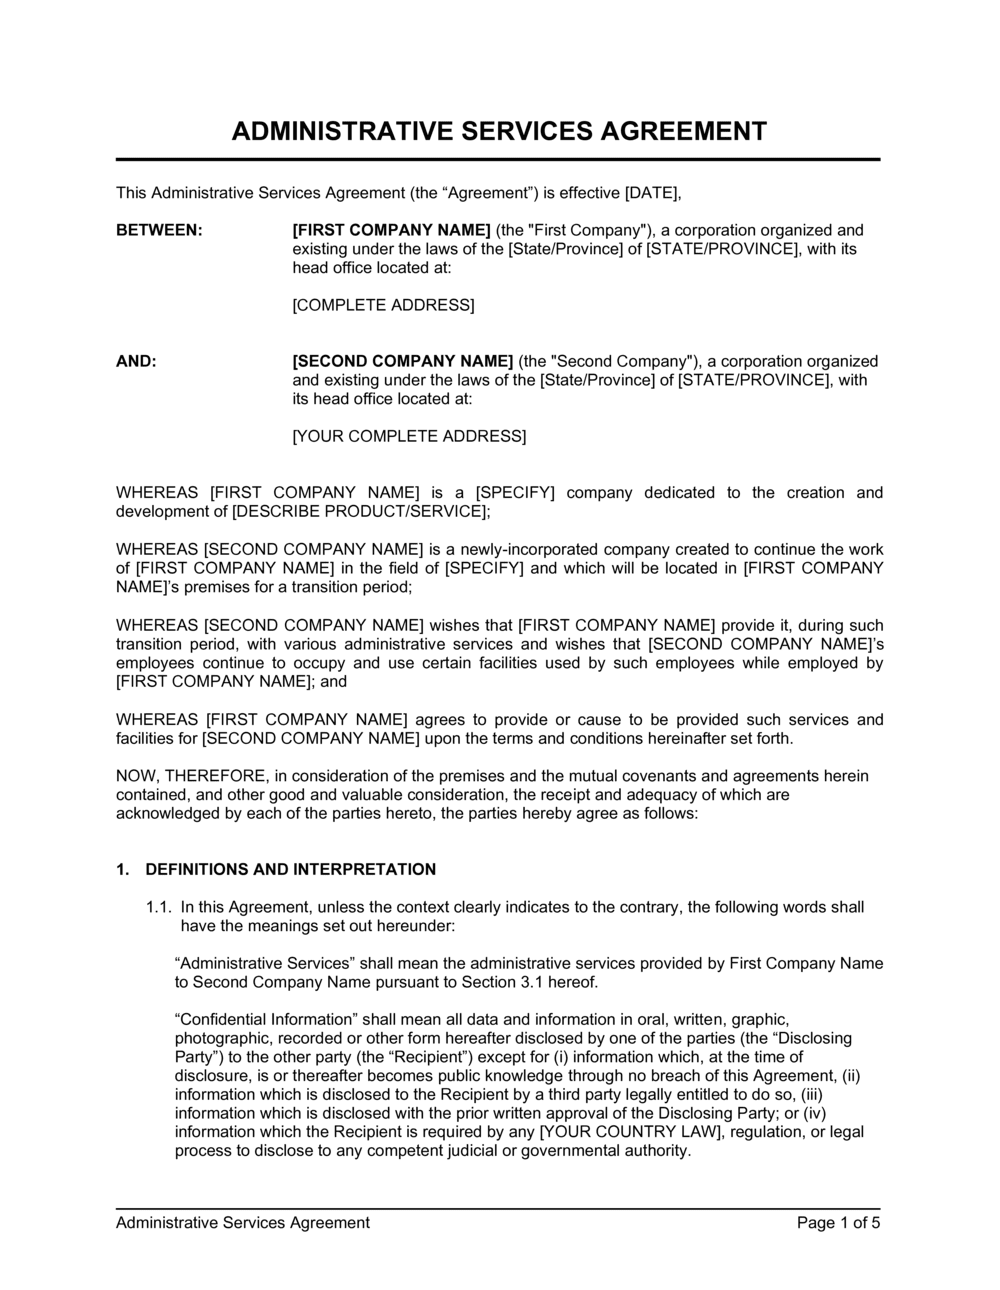 Business-in-a-Box's Administrative Services Agreement 2 Template